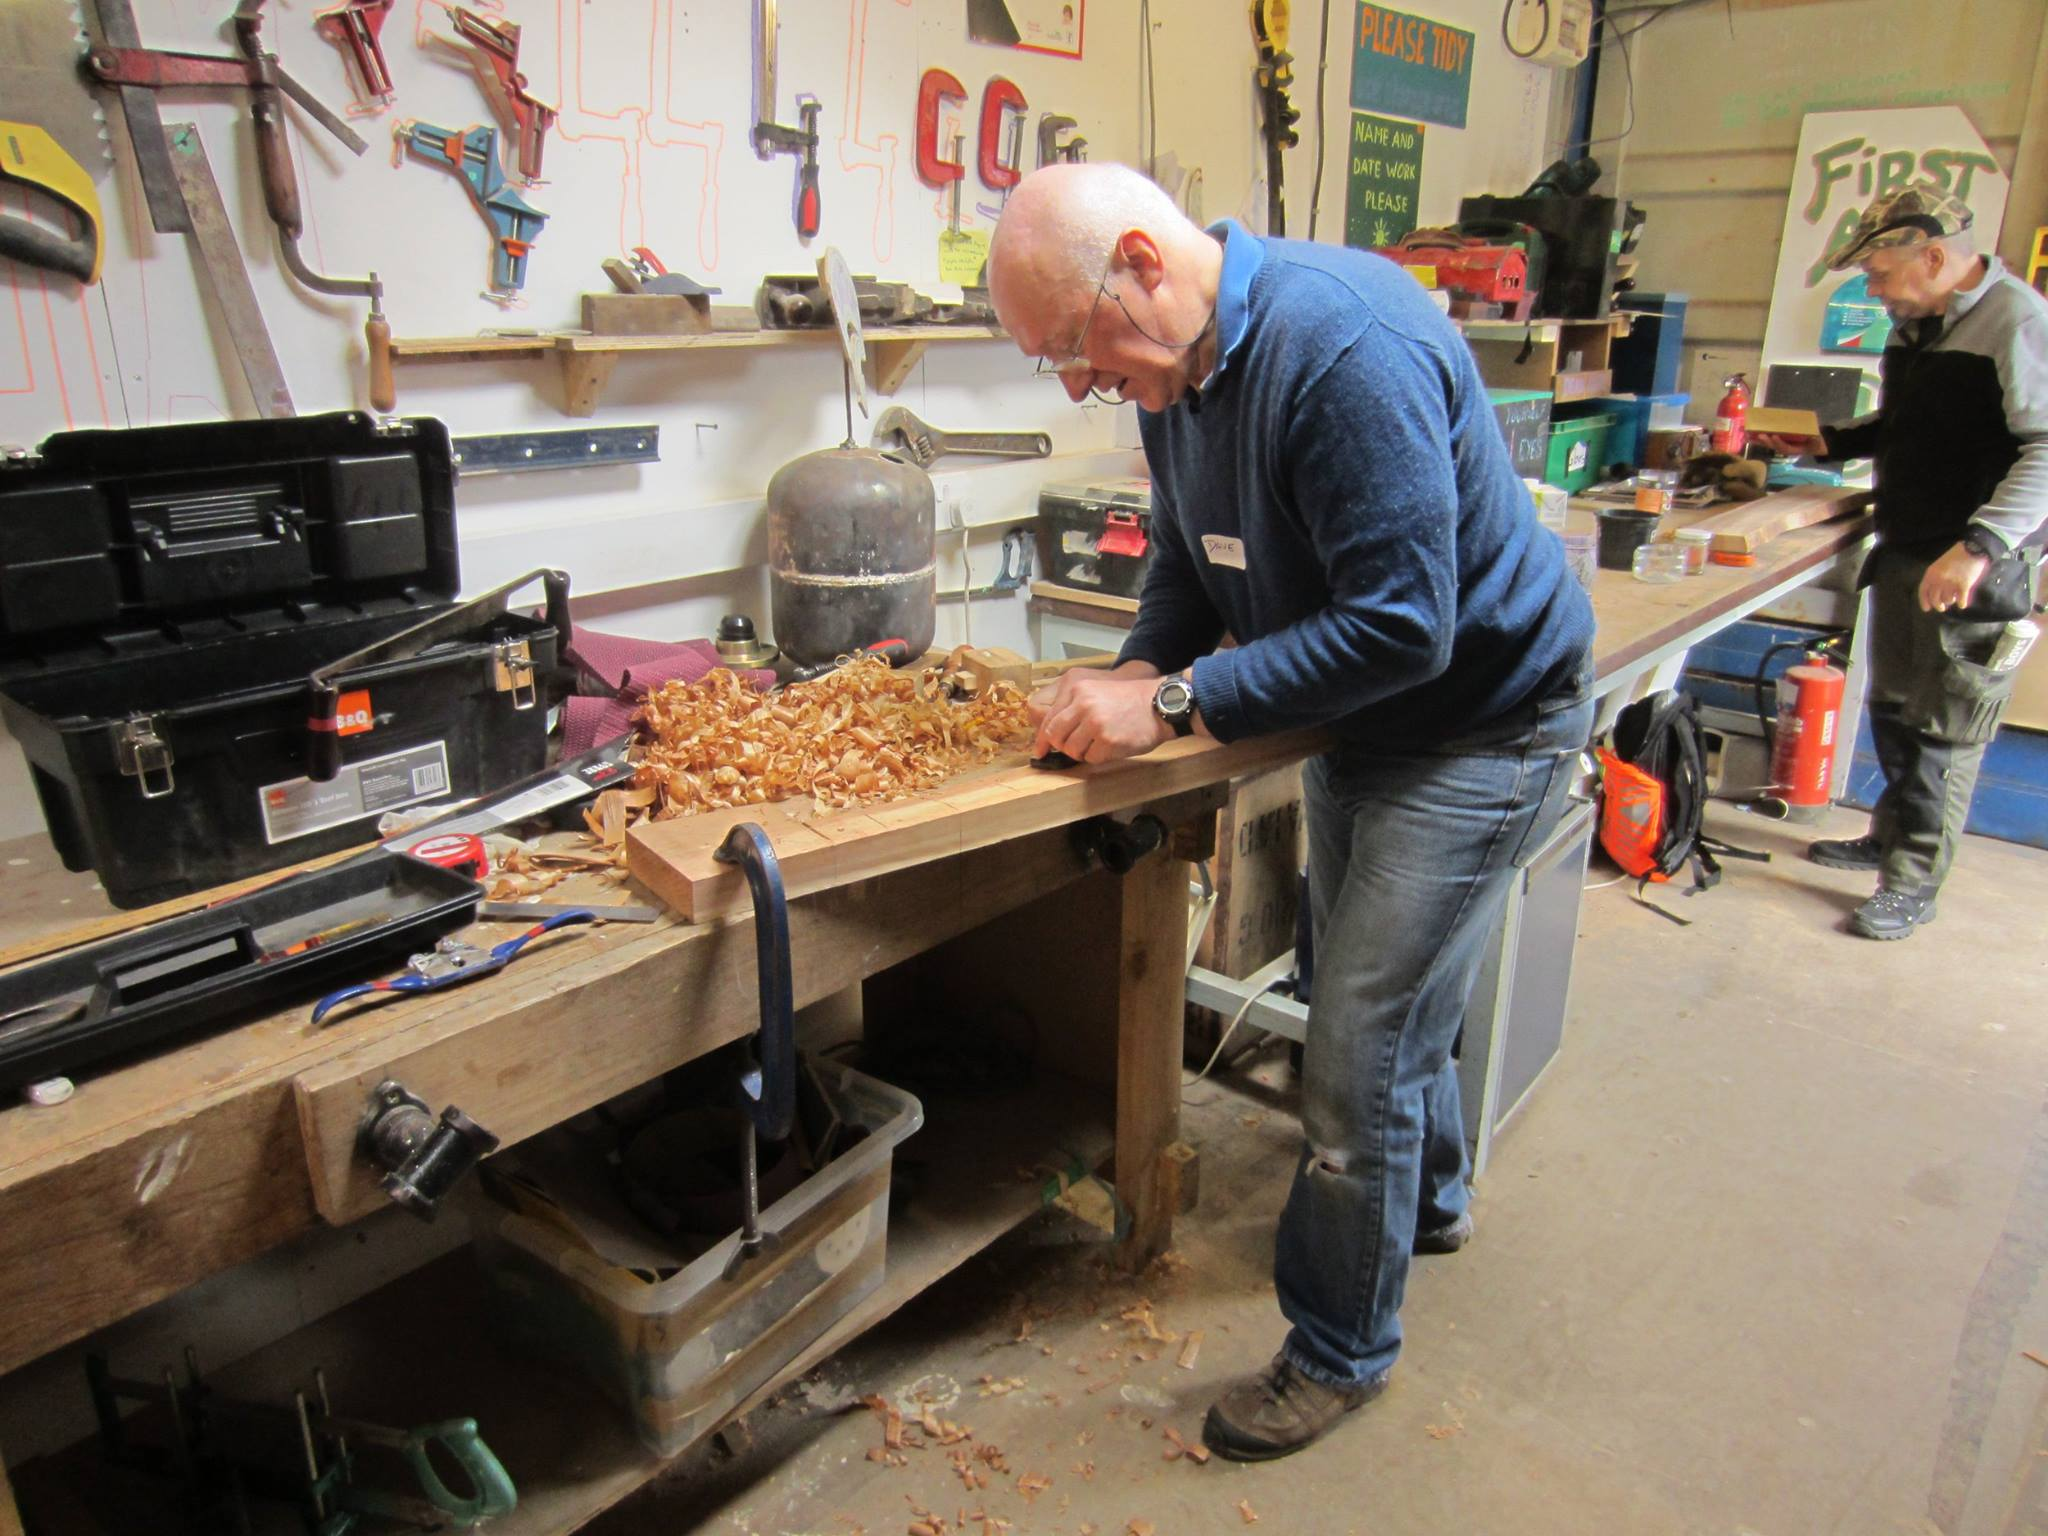 Wood workshop at the Forge